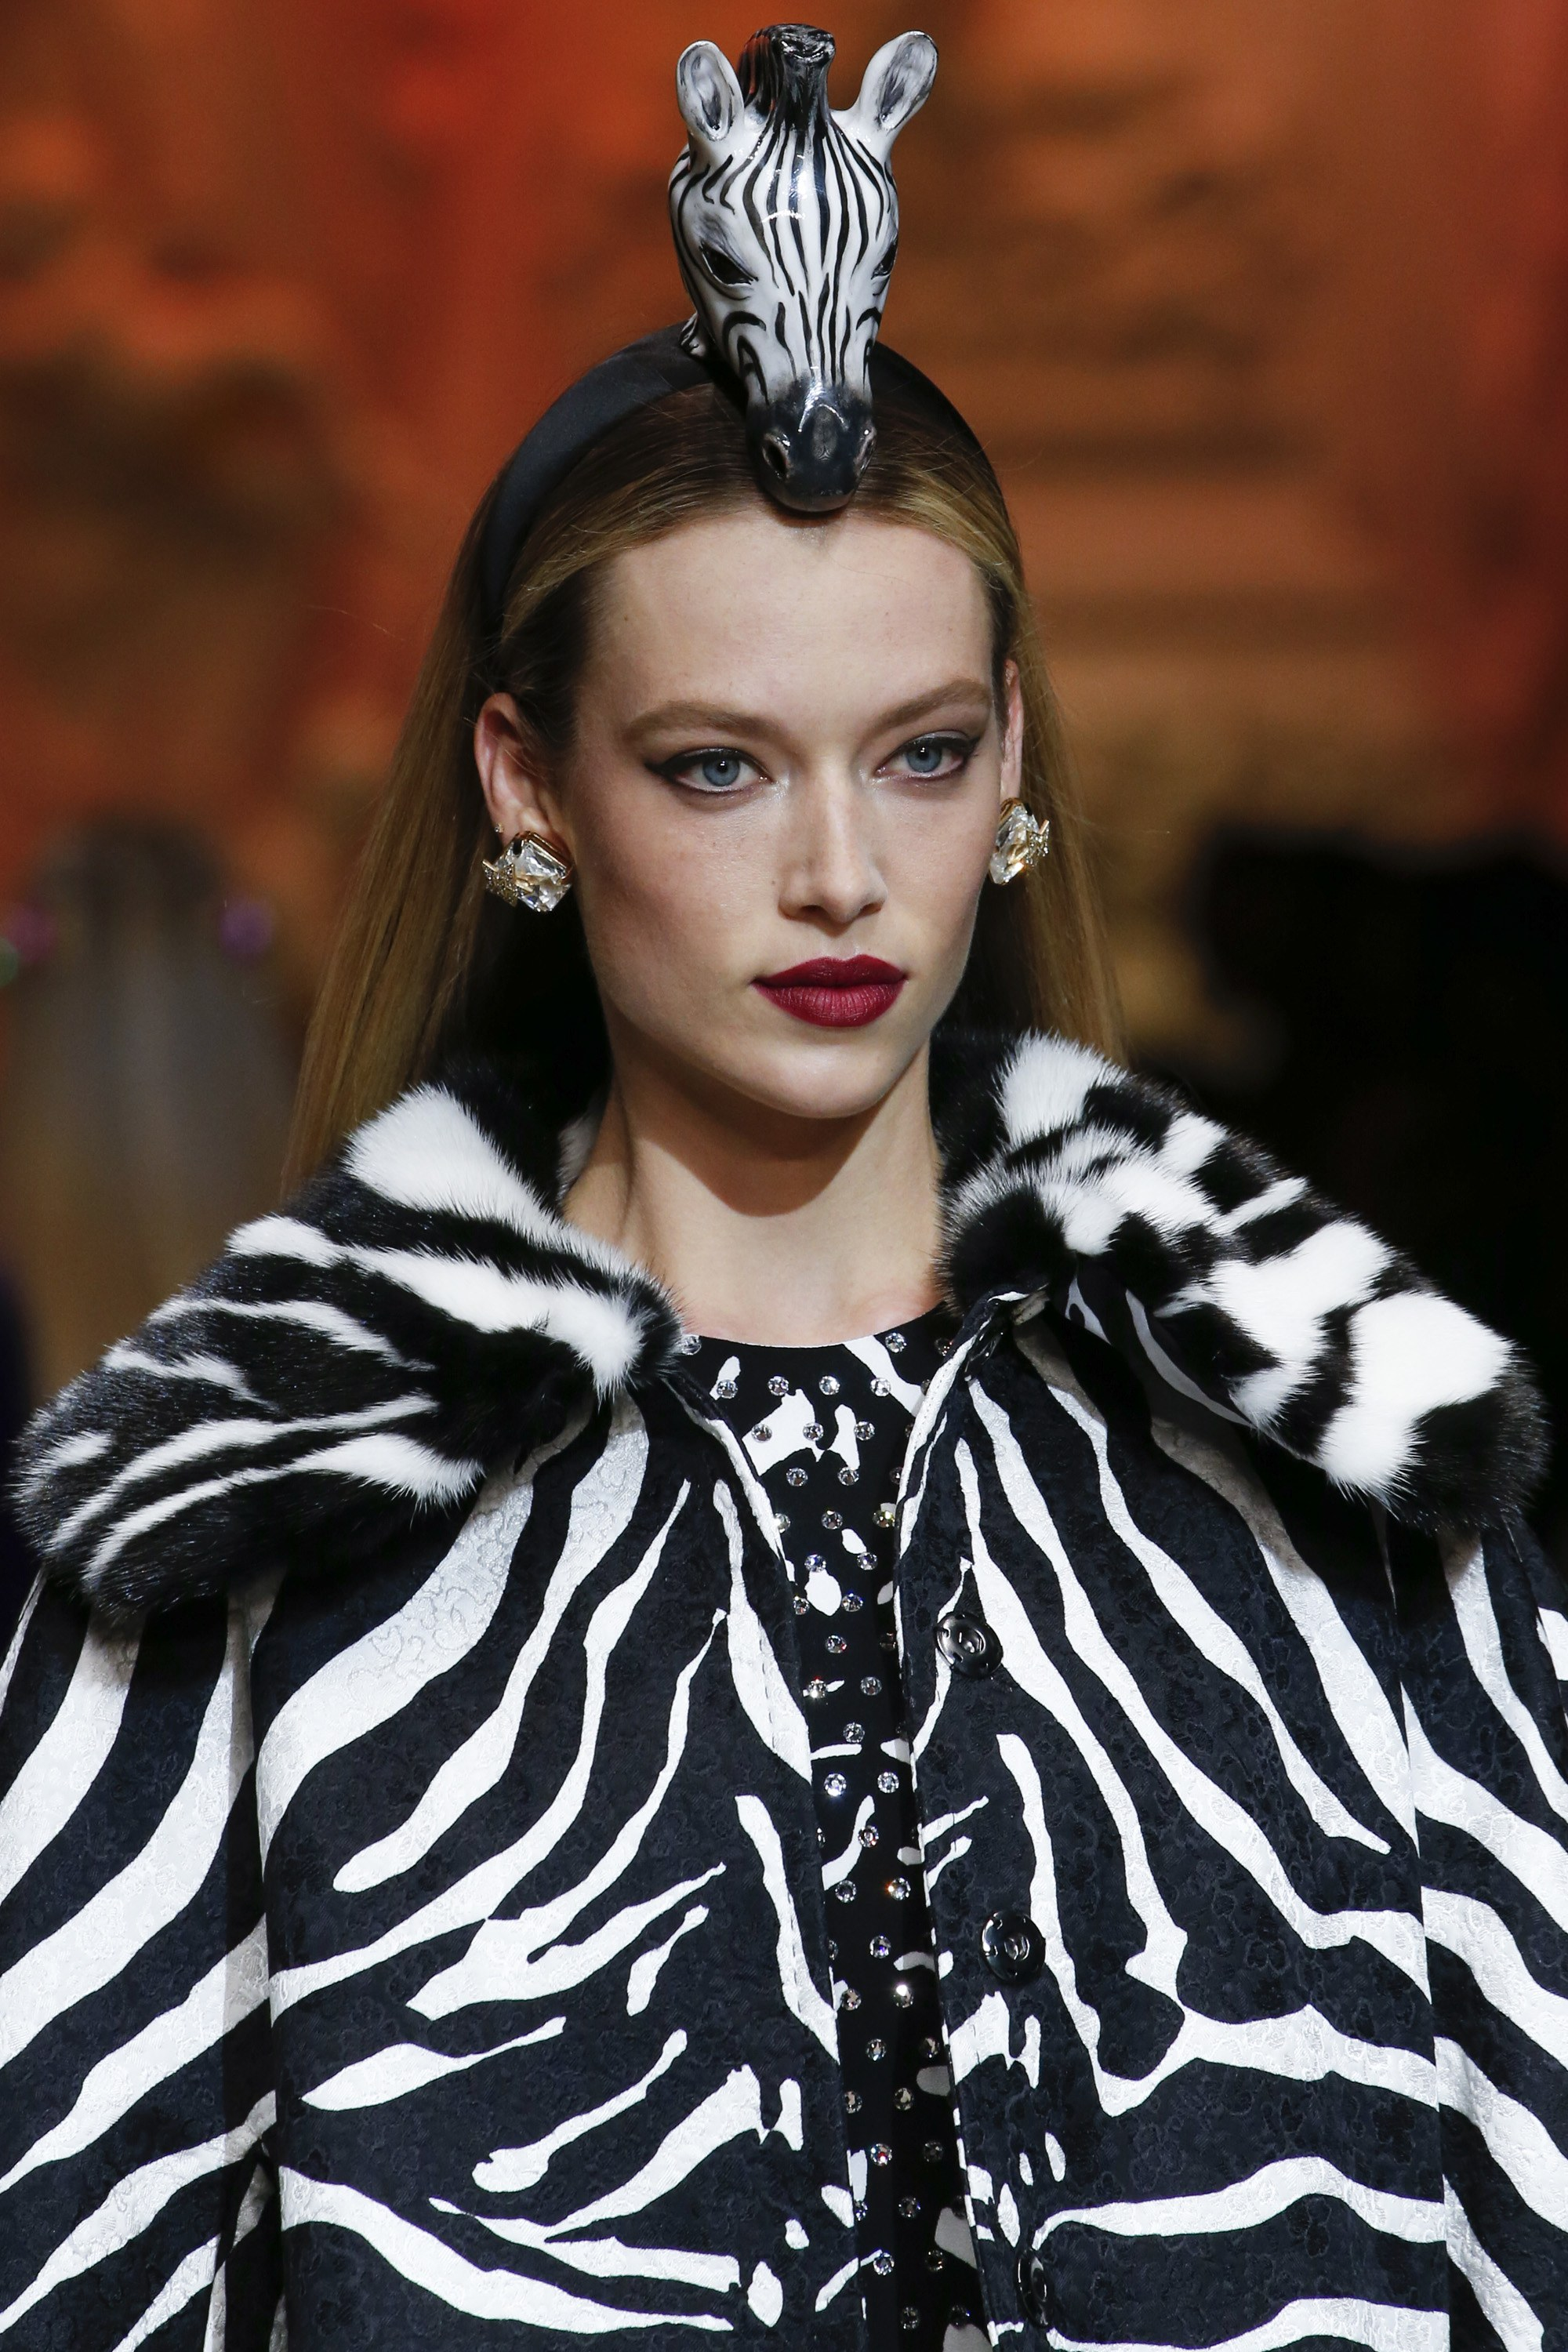 MILANO-Dolce & Gabbana Runway, Fall Winter 2018, Milan Fashion Week, Italy -  Model on the catwalk -Hailey Baldwin-Cara Taylor,   <P> Pictured: Models, <B>Ref: SPL1663598  260218  </B><BR/> Picture by: NPictures / Splash News<BR/> </P><P> <B>Splash News and Pictures</B><BR/> Los Angeles:310-821-2666<BR/> New York:212-619-2666<BR/> London:870-934-2666<BR/> <span id=